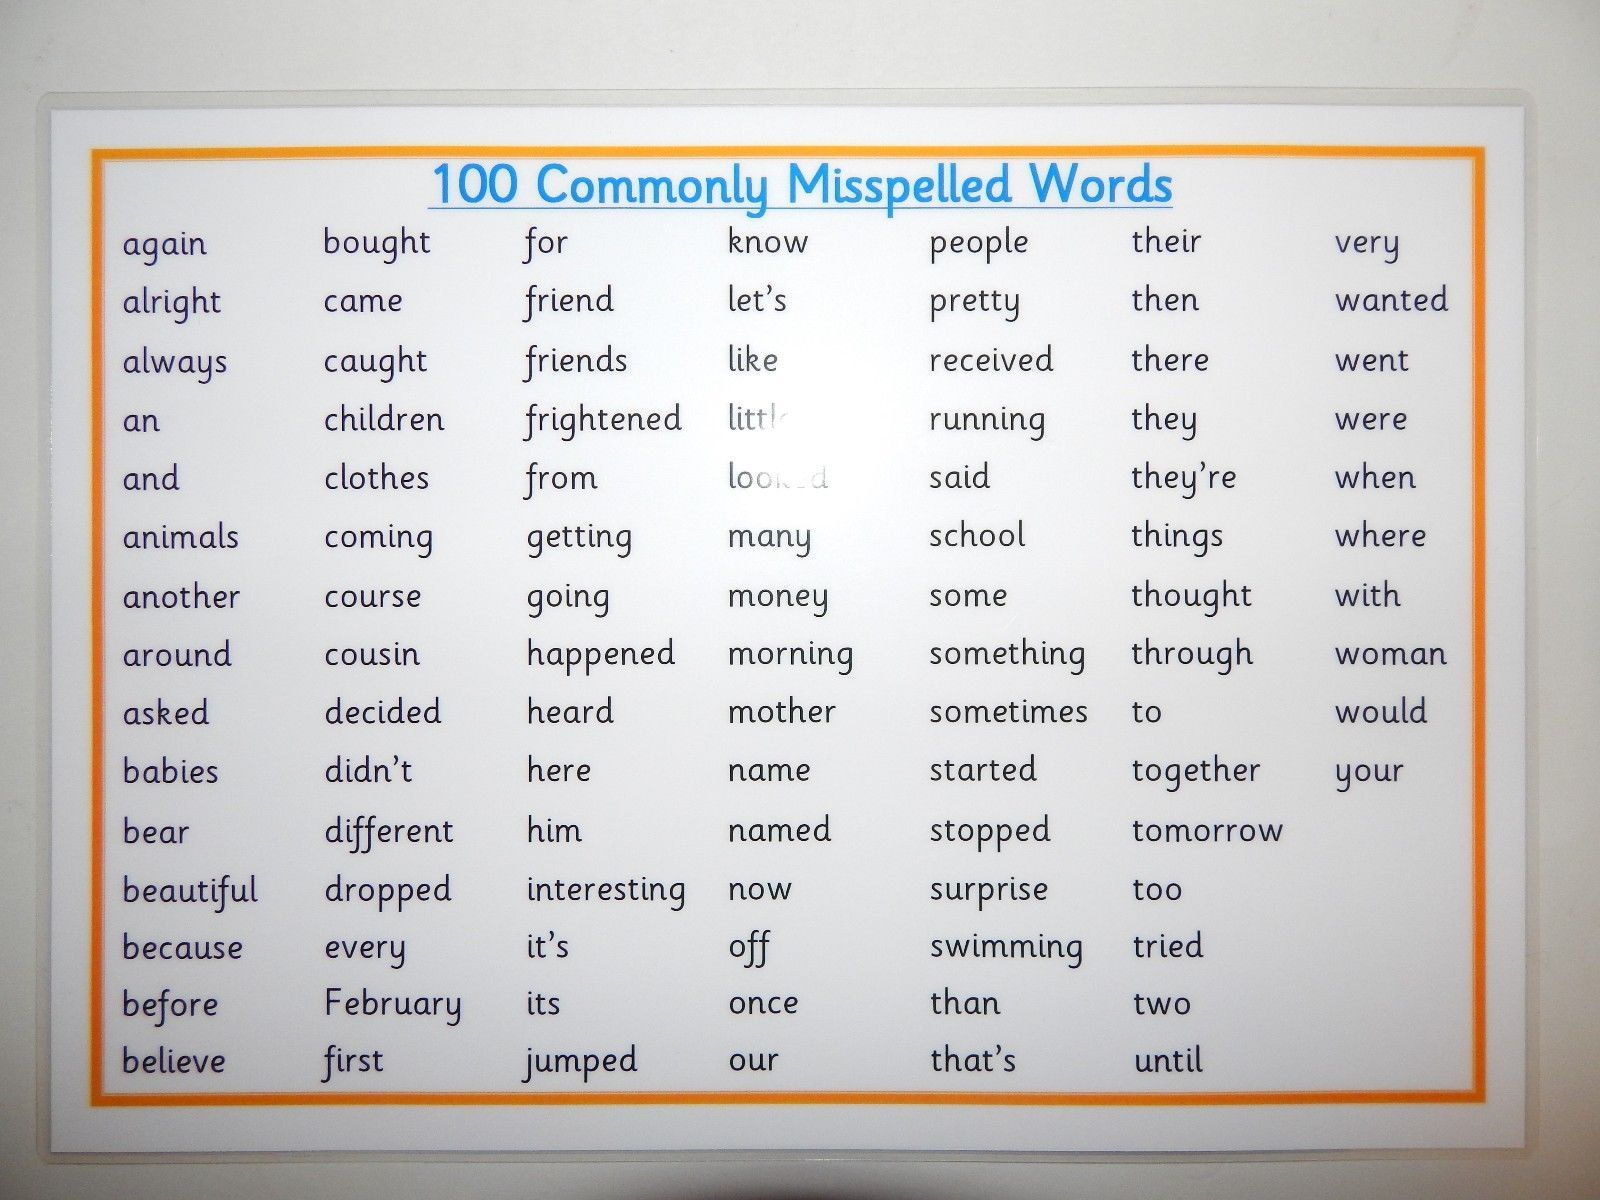 100 Commonly Misspelled Words